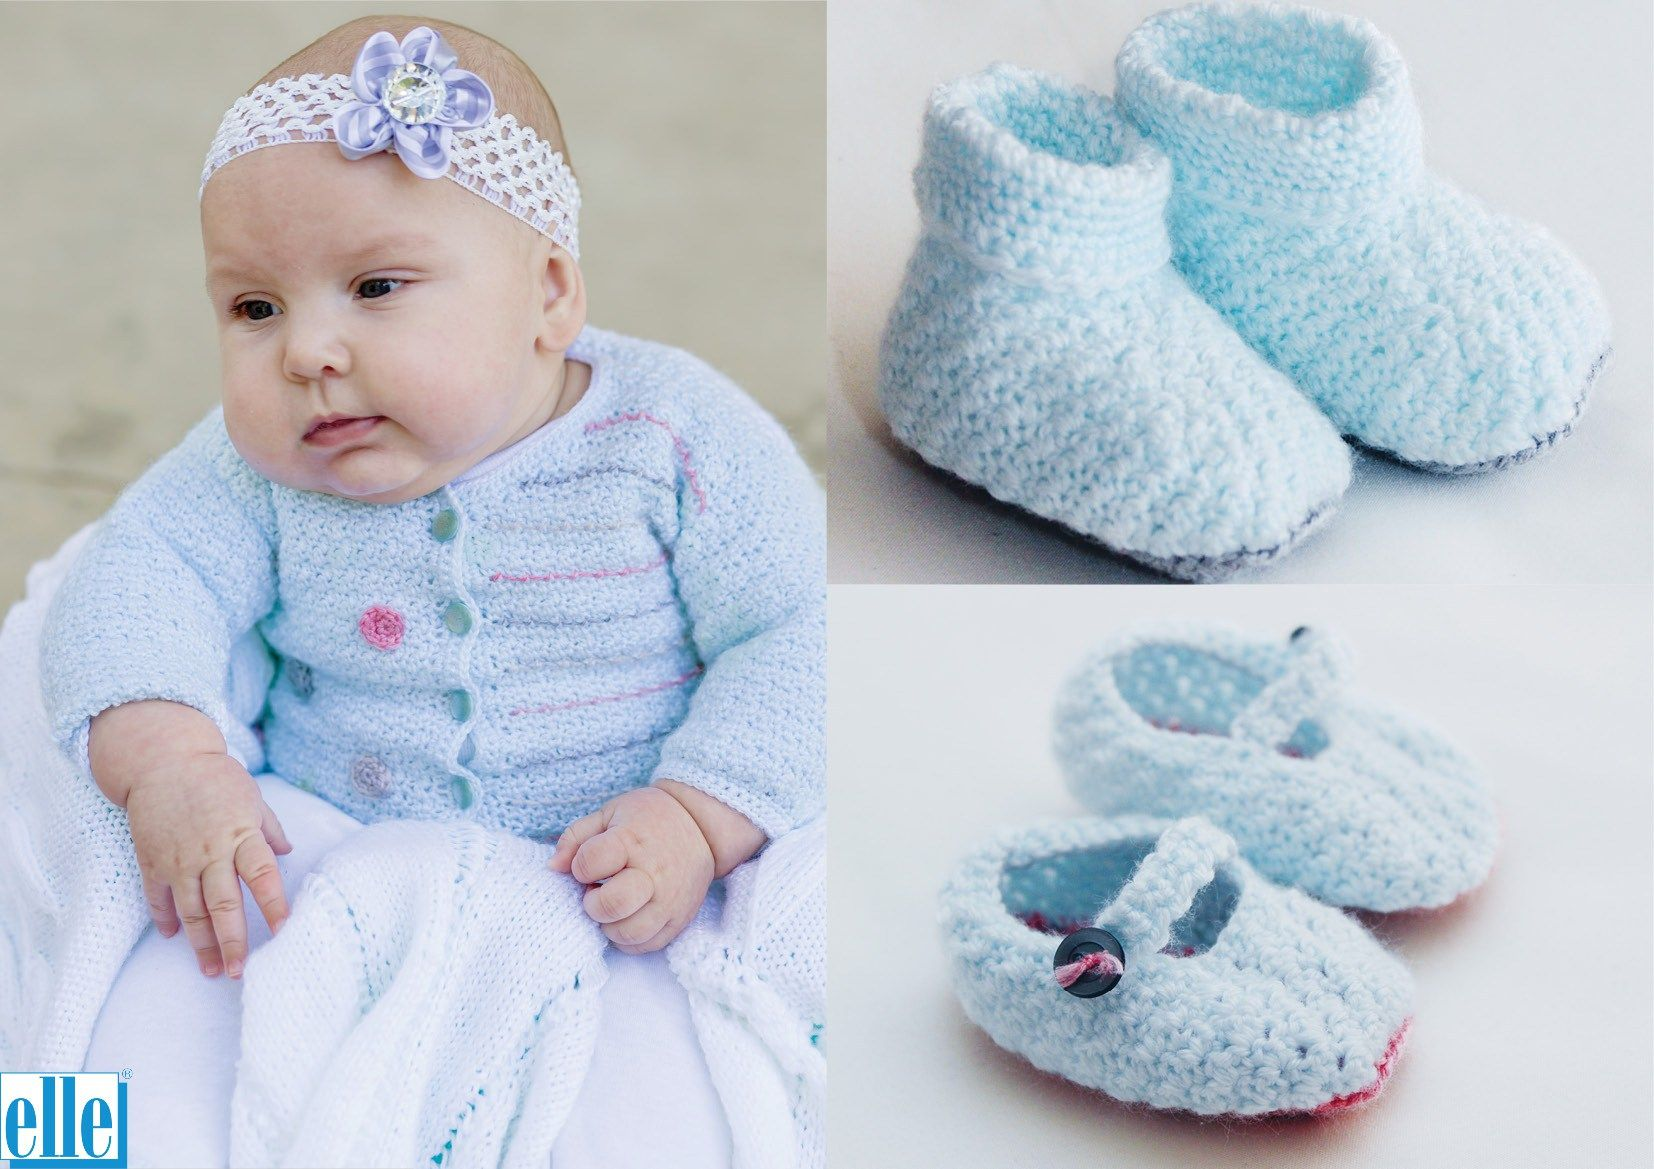 Cardigan & Bootees/Shoes  Brand: Elle Count: 4ply Yarn: Babykins Size From: Birth Size To: 24 months